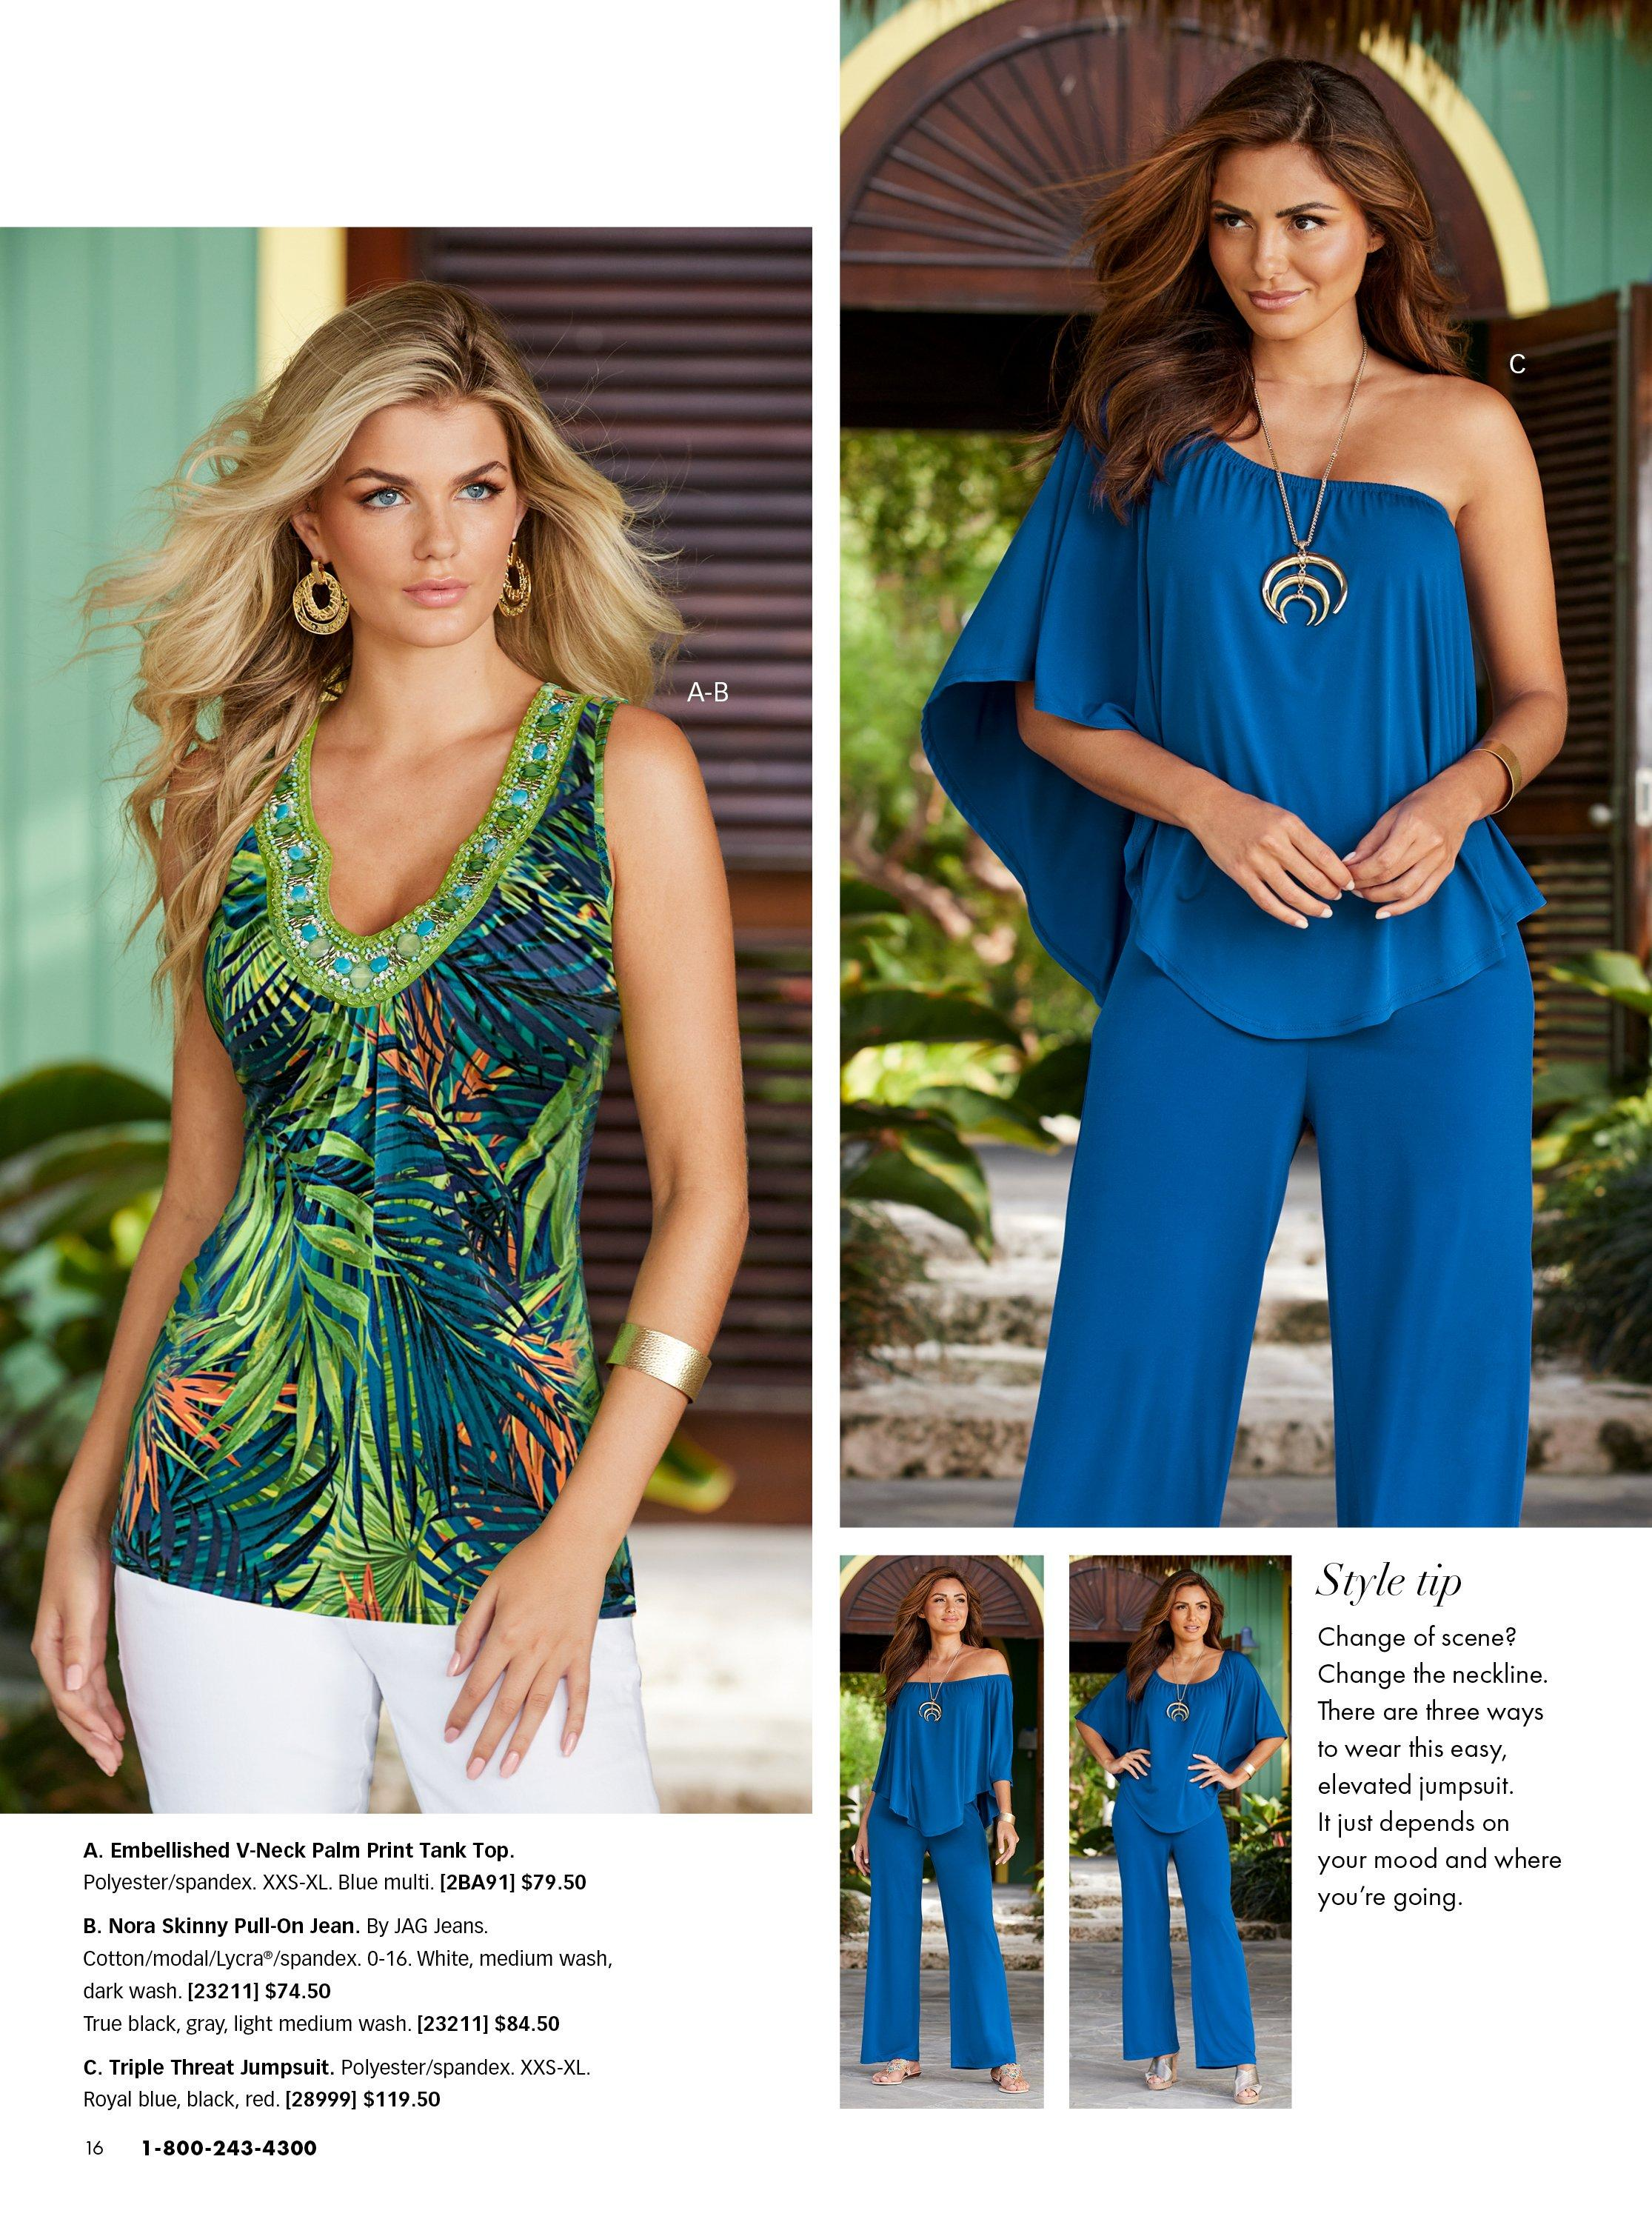 left model wearing a sleeveless embellished jungle print top and white pants. right model wearing a blue off-the-shoulder jumpsuit.